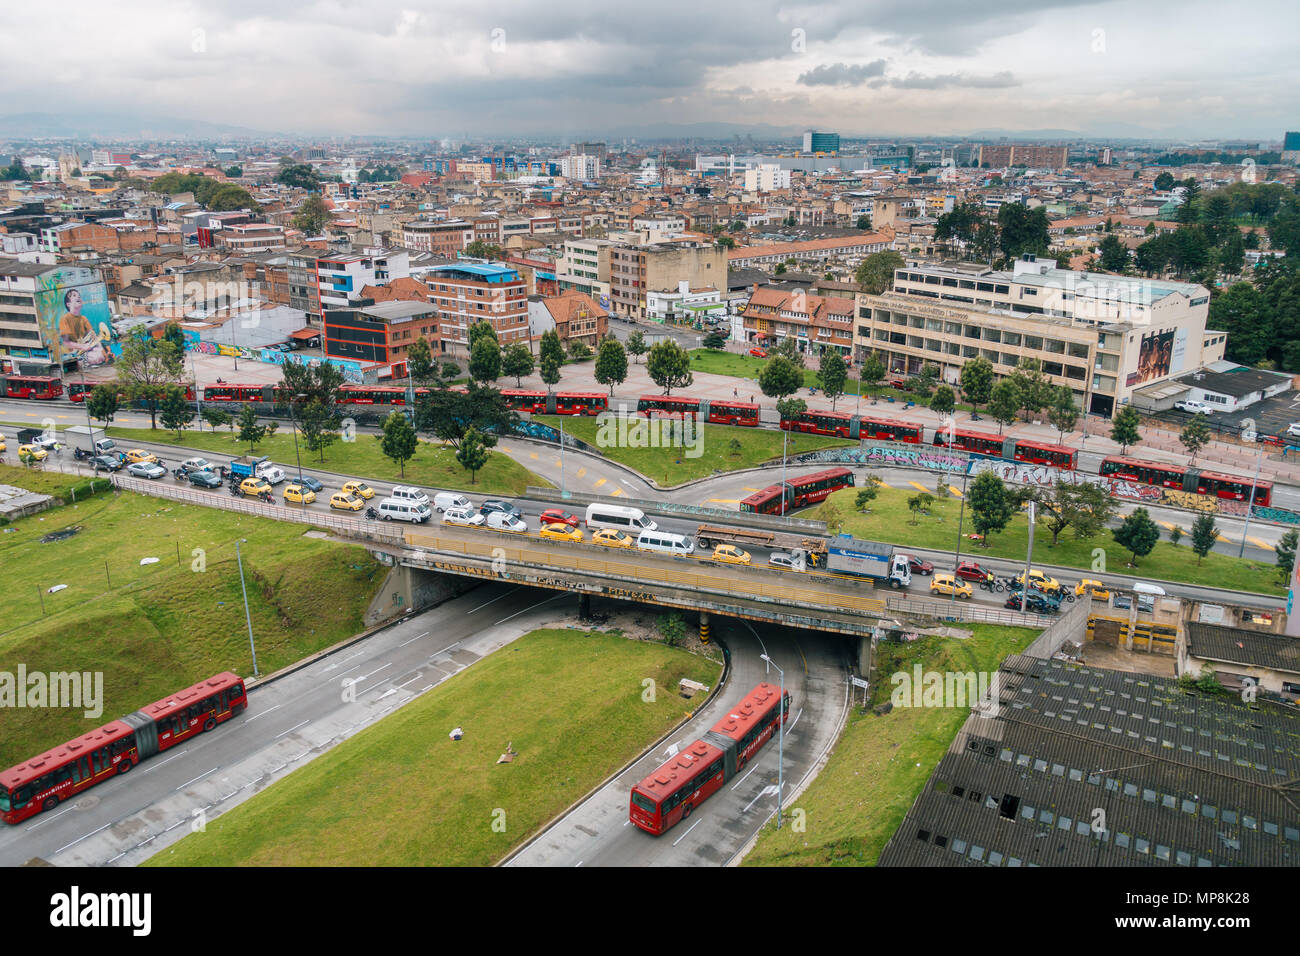 aerial view of early morning rush hour traffic featuring numerous taxis and articulated Transmilenio buses in Colombia's capital, Bogotá - Stock Image